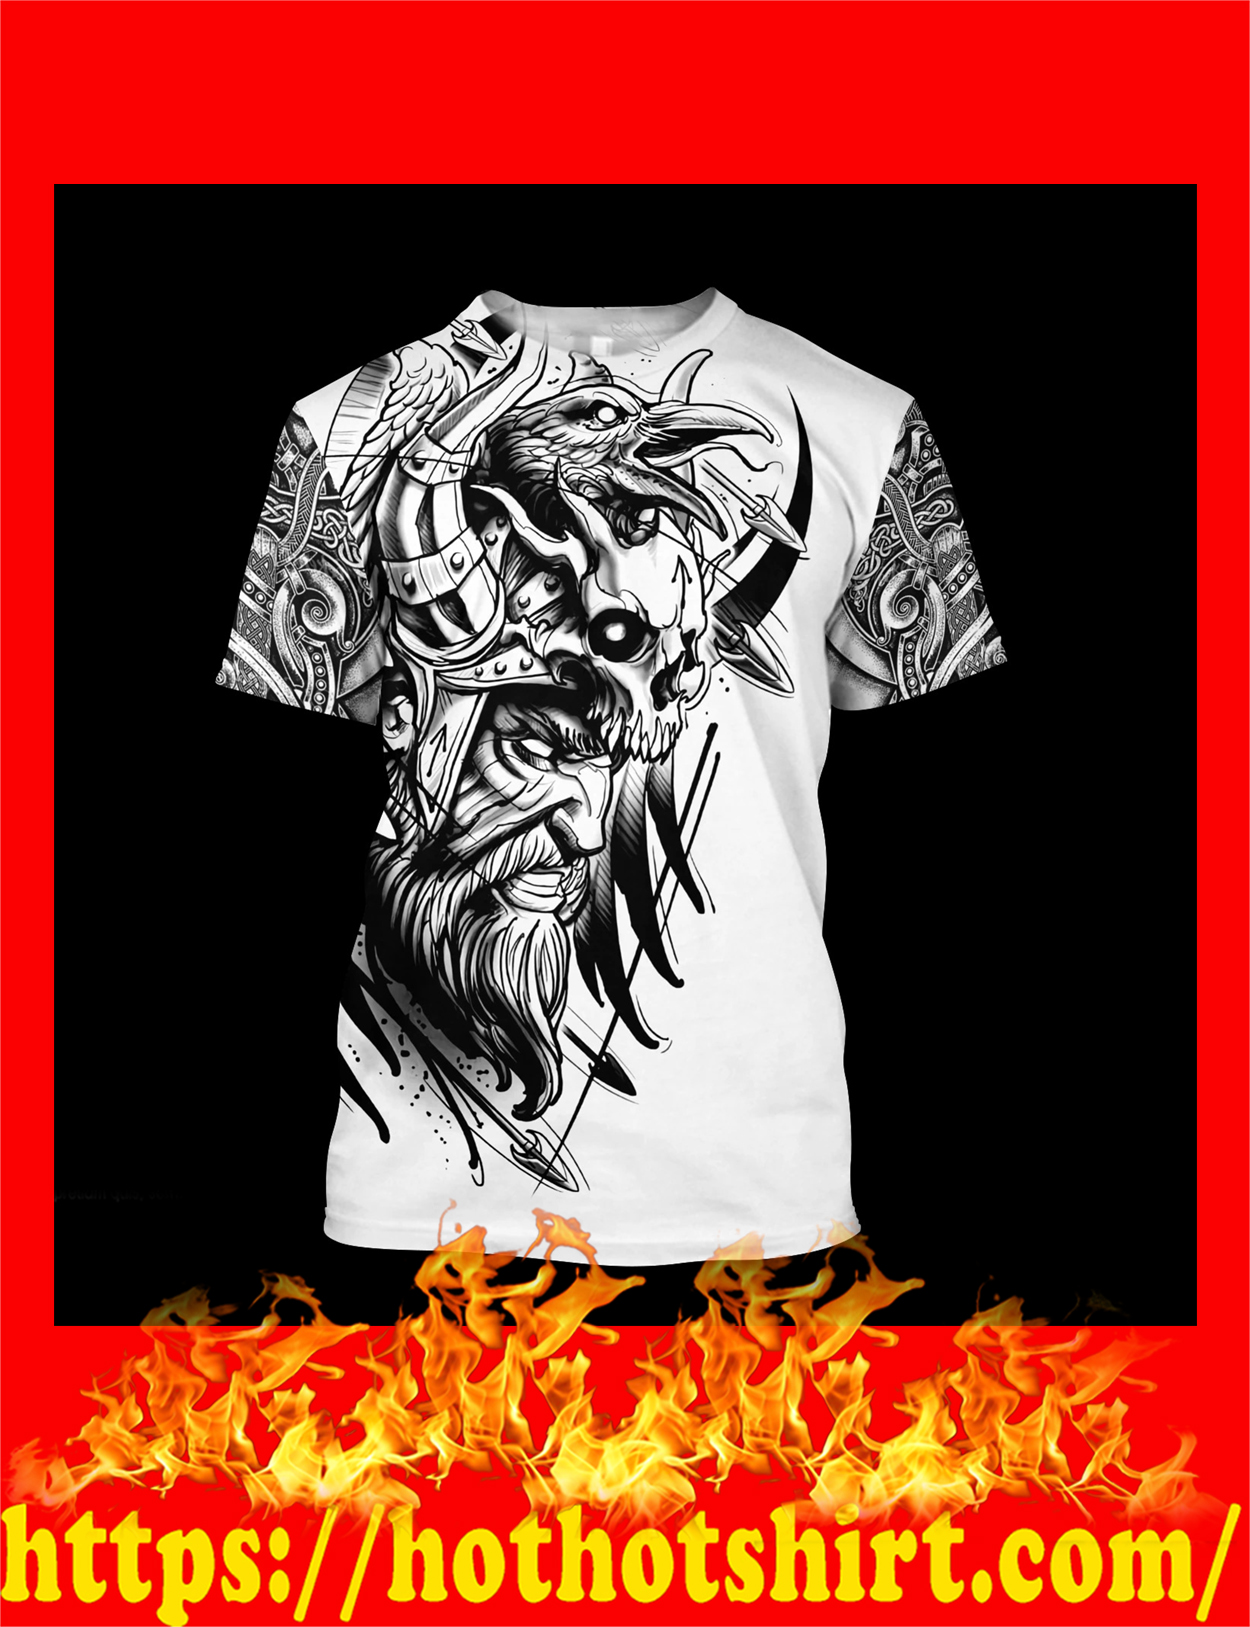 Love viking tattoos 3d all over printed T-shirt